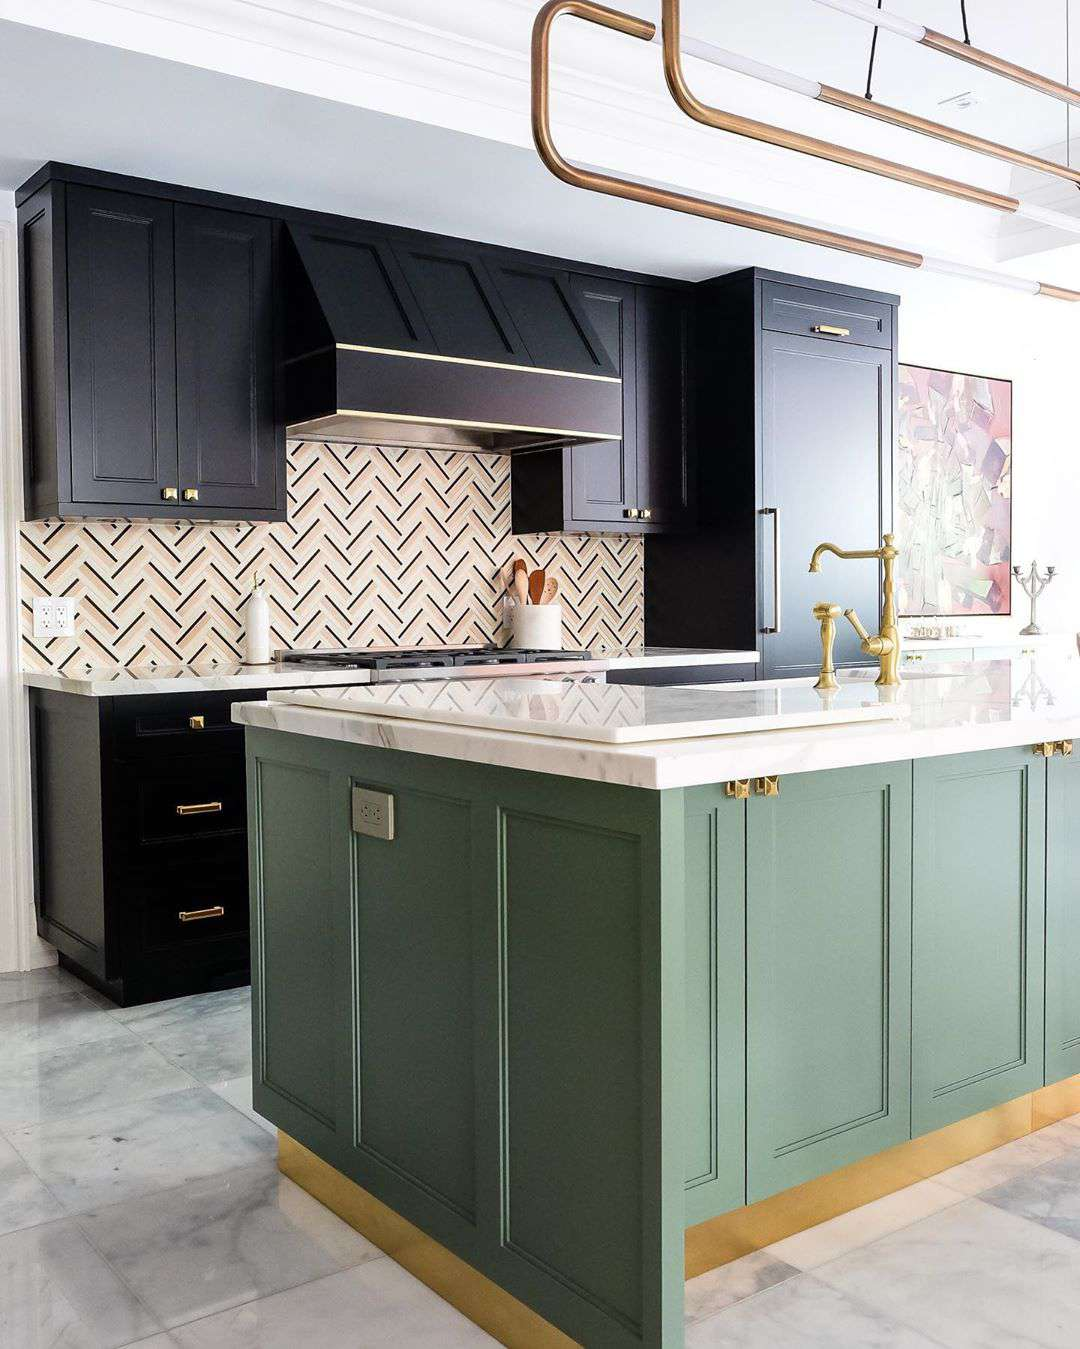 Green and black kitchen